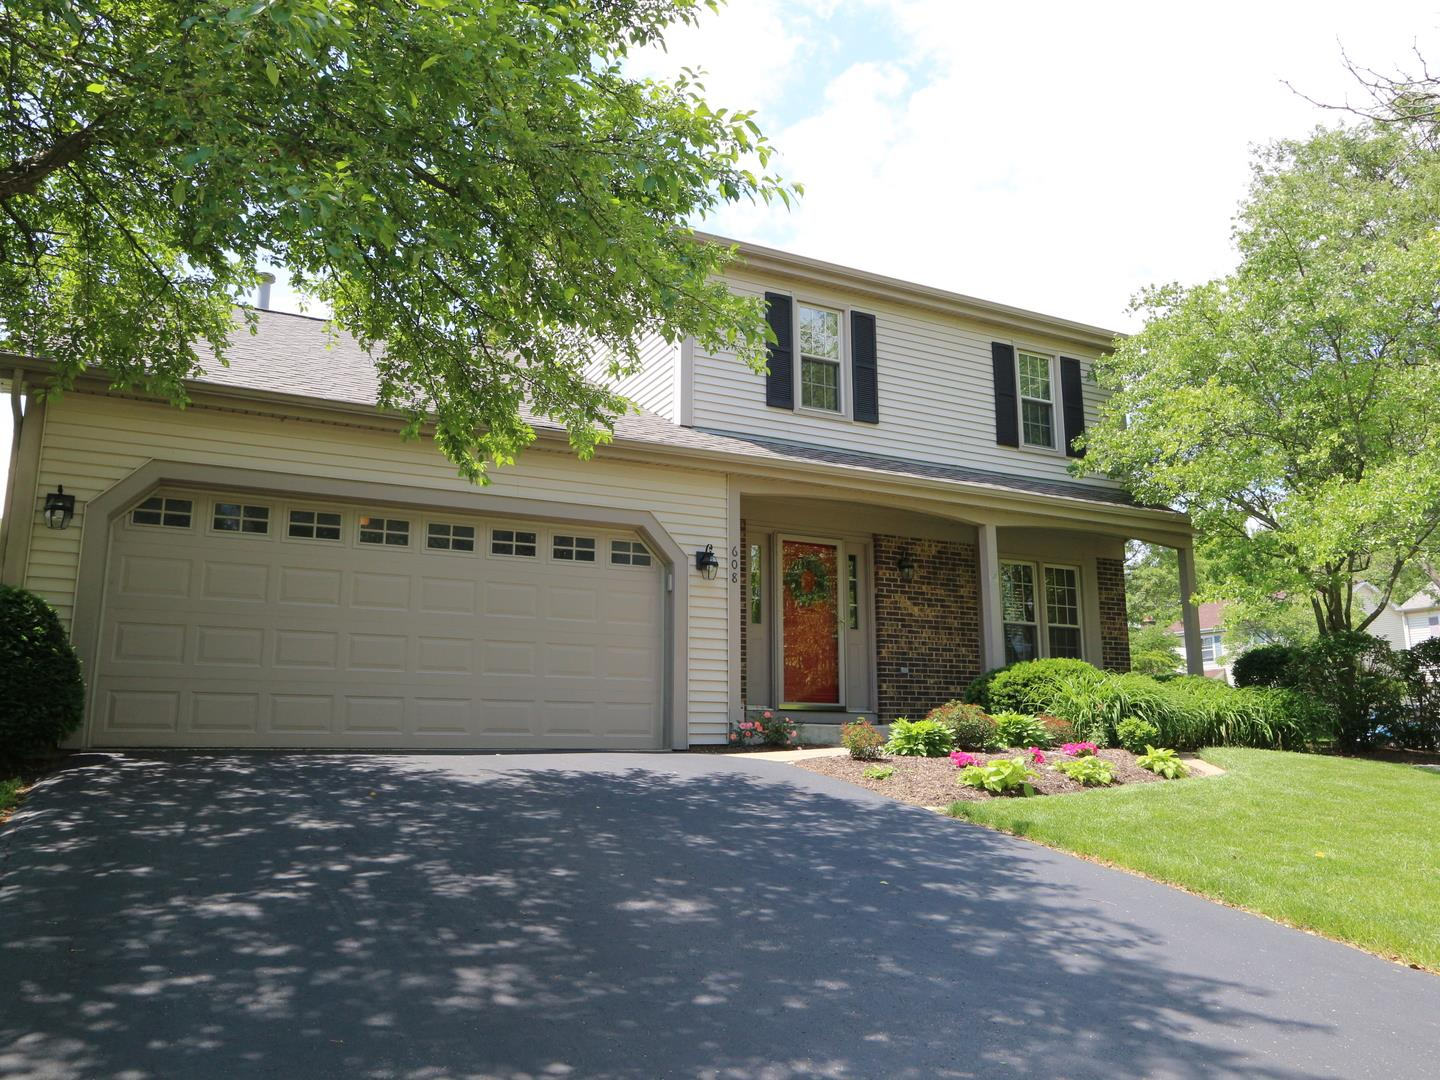 608 Thackeray Lane, Fox River Grove, IL 60021 - #: 10600345